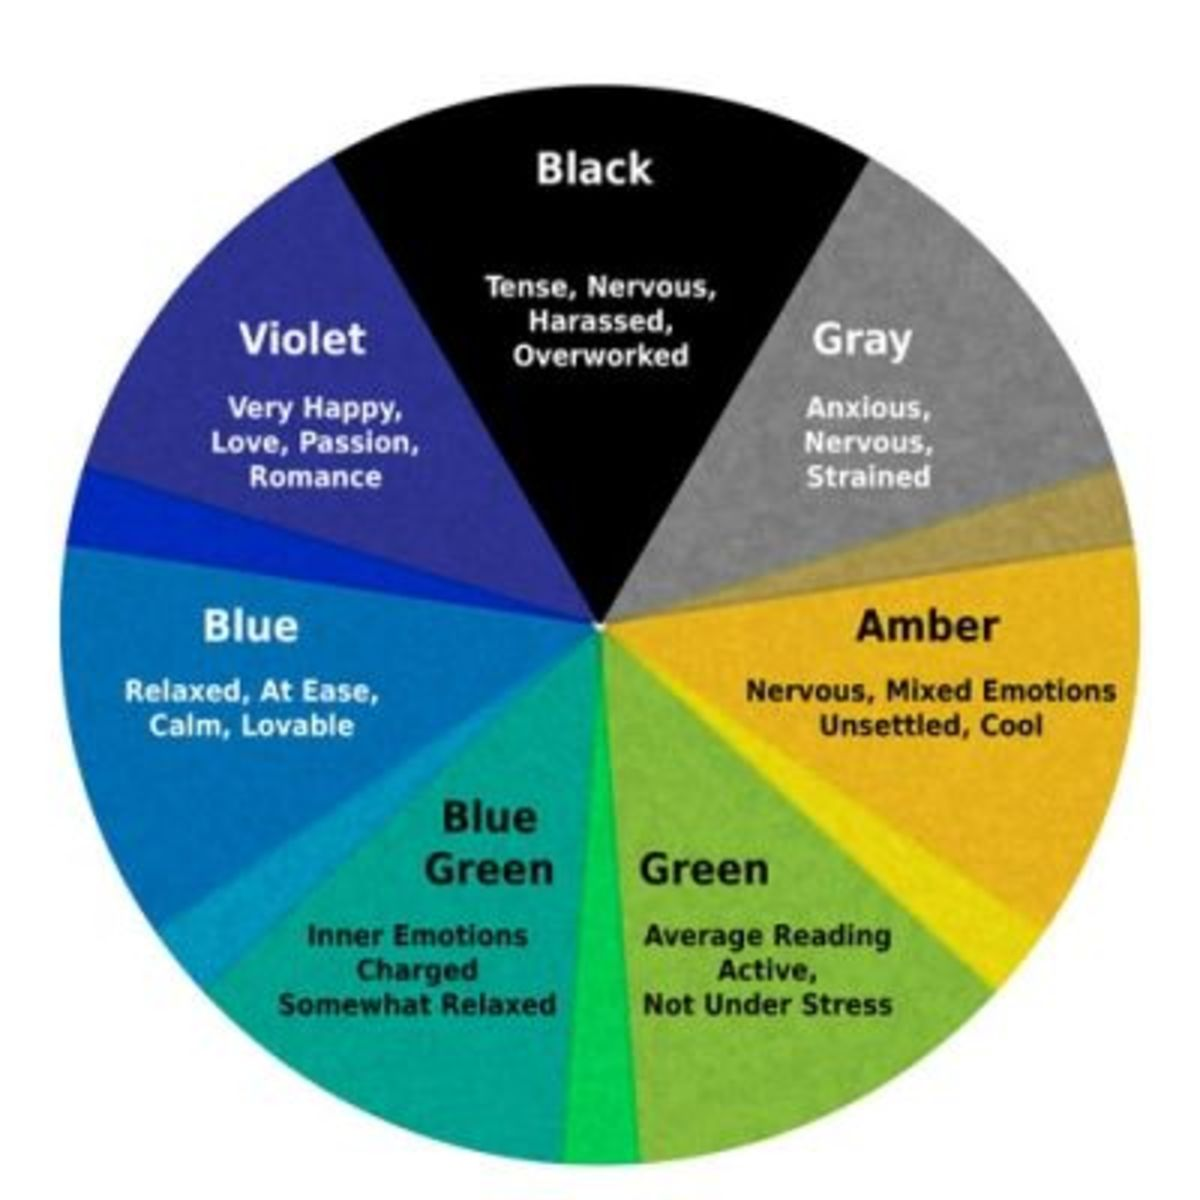 Mood Ring Meanings